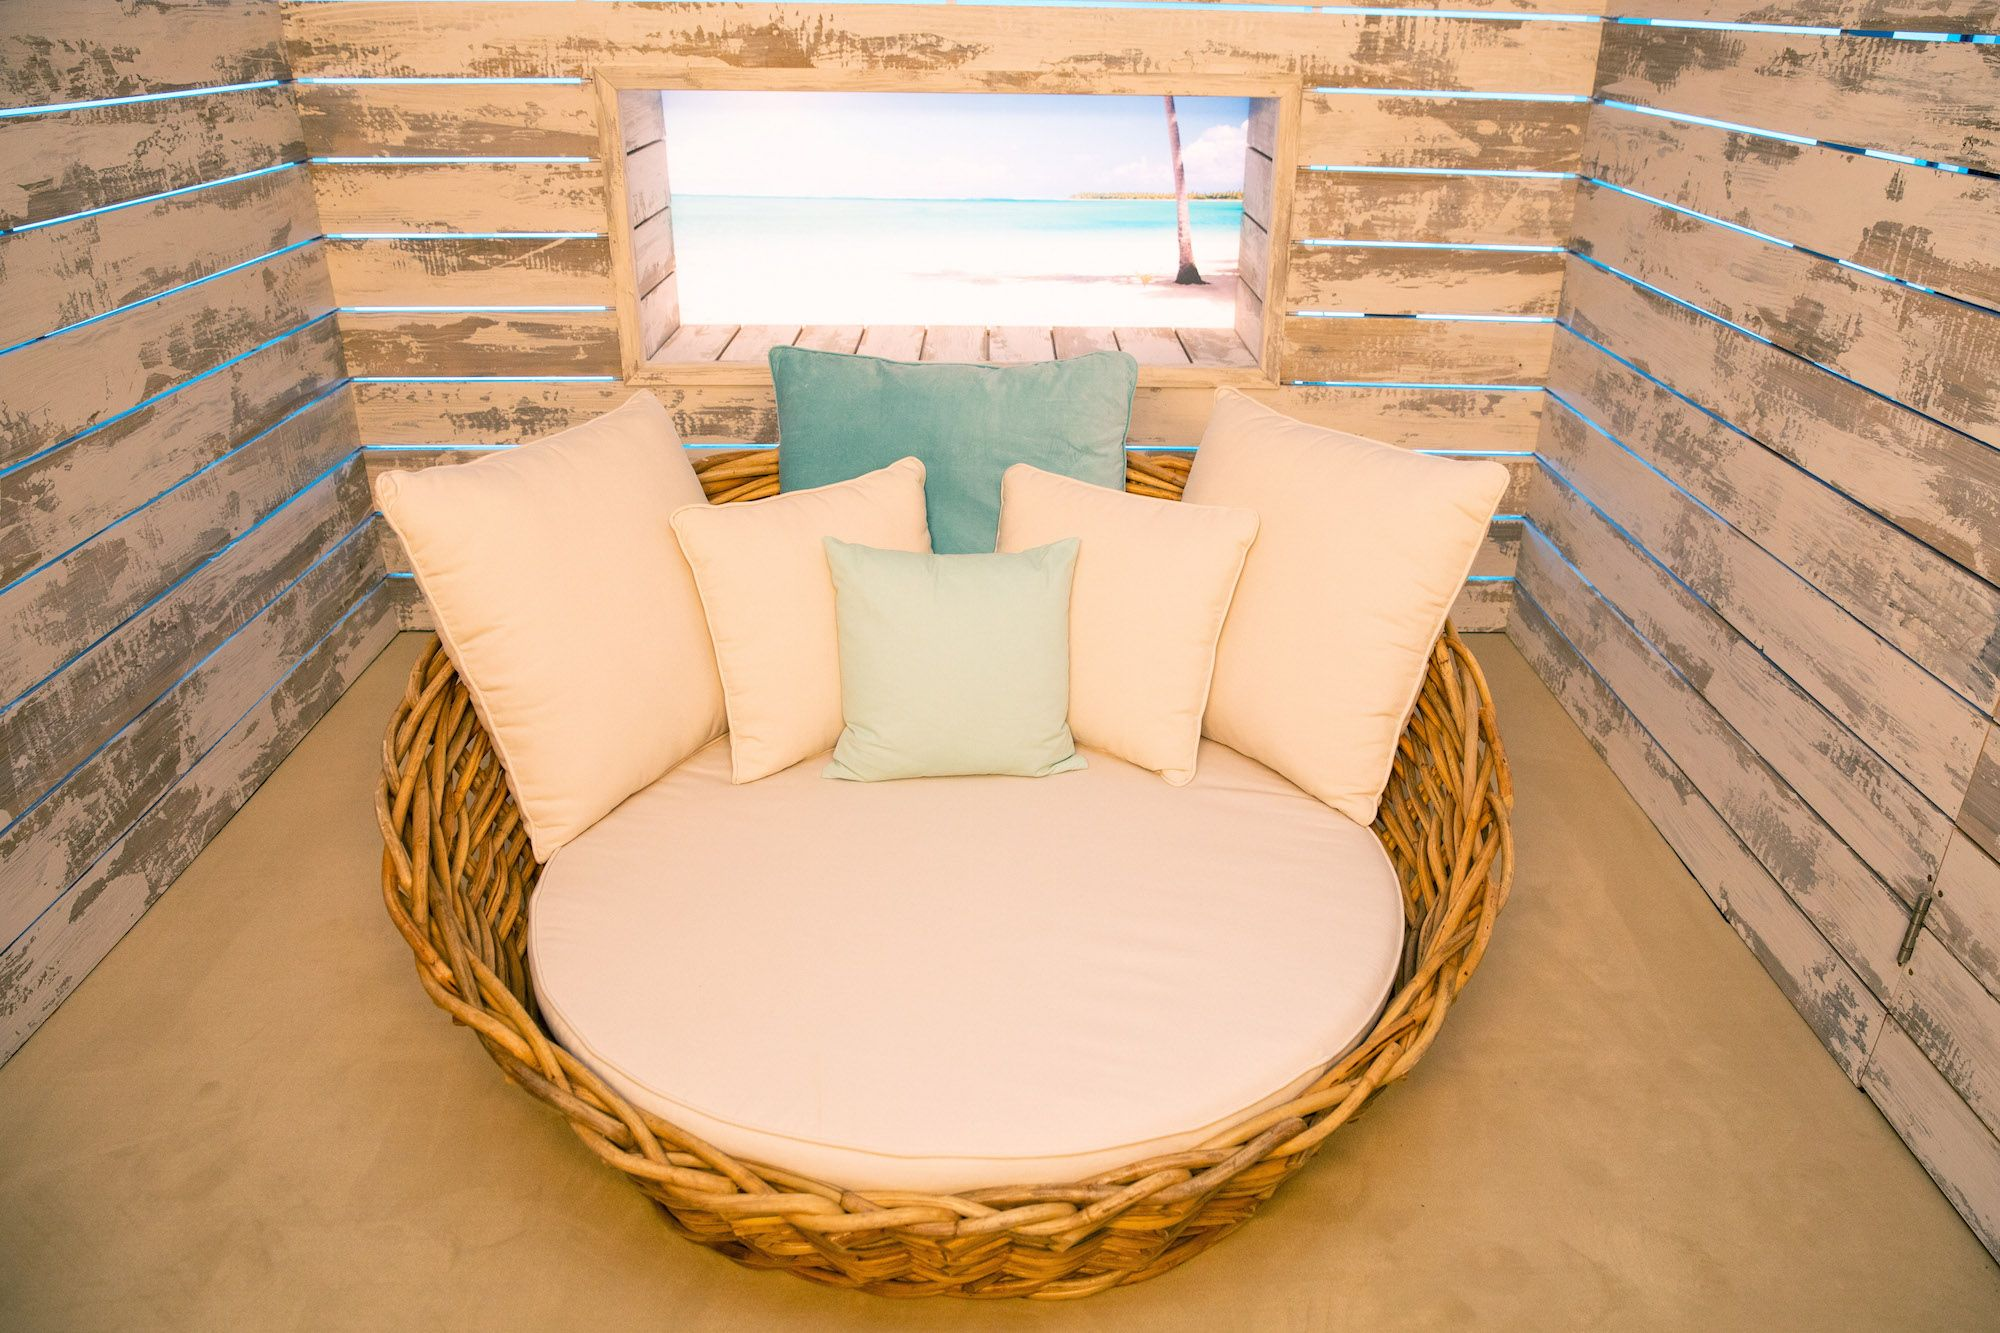 Image may contain: Love Island villa, Love Island, villa, location, 2019, where is it, Majorca, Plywood, Bed, Housing, Building, Home Decor, Wood, Pillow, Cushion, Couch, Furniture